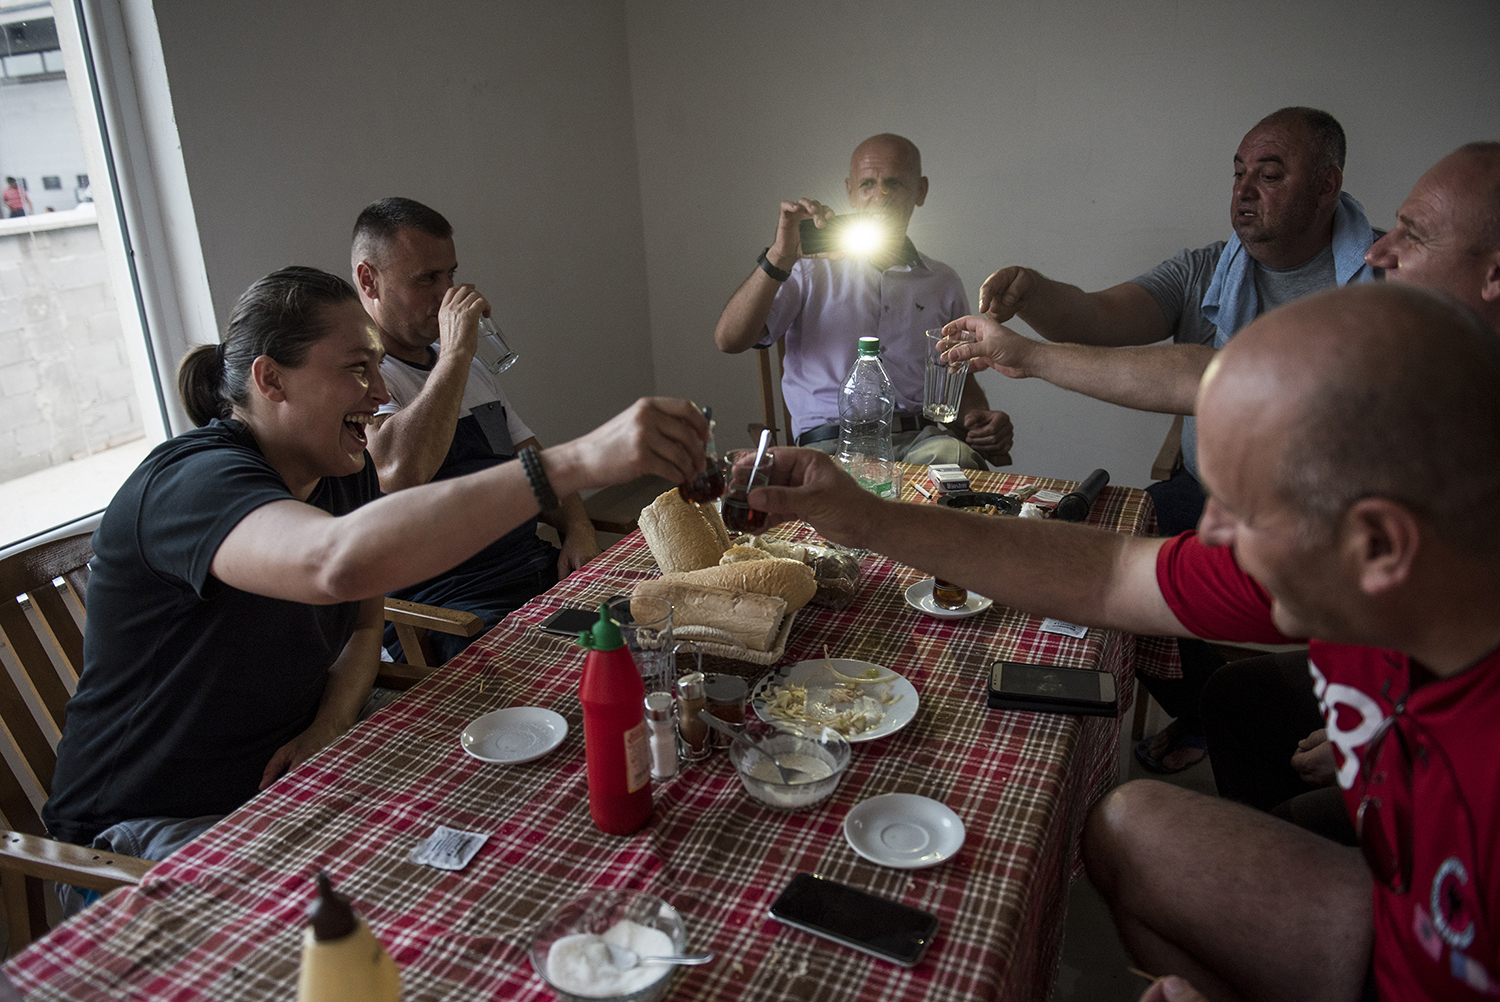 A group of people gathers around the dinner table